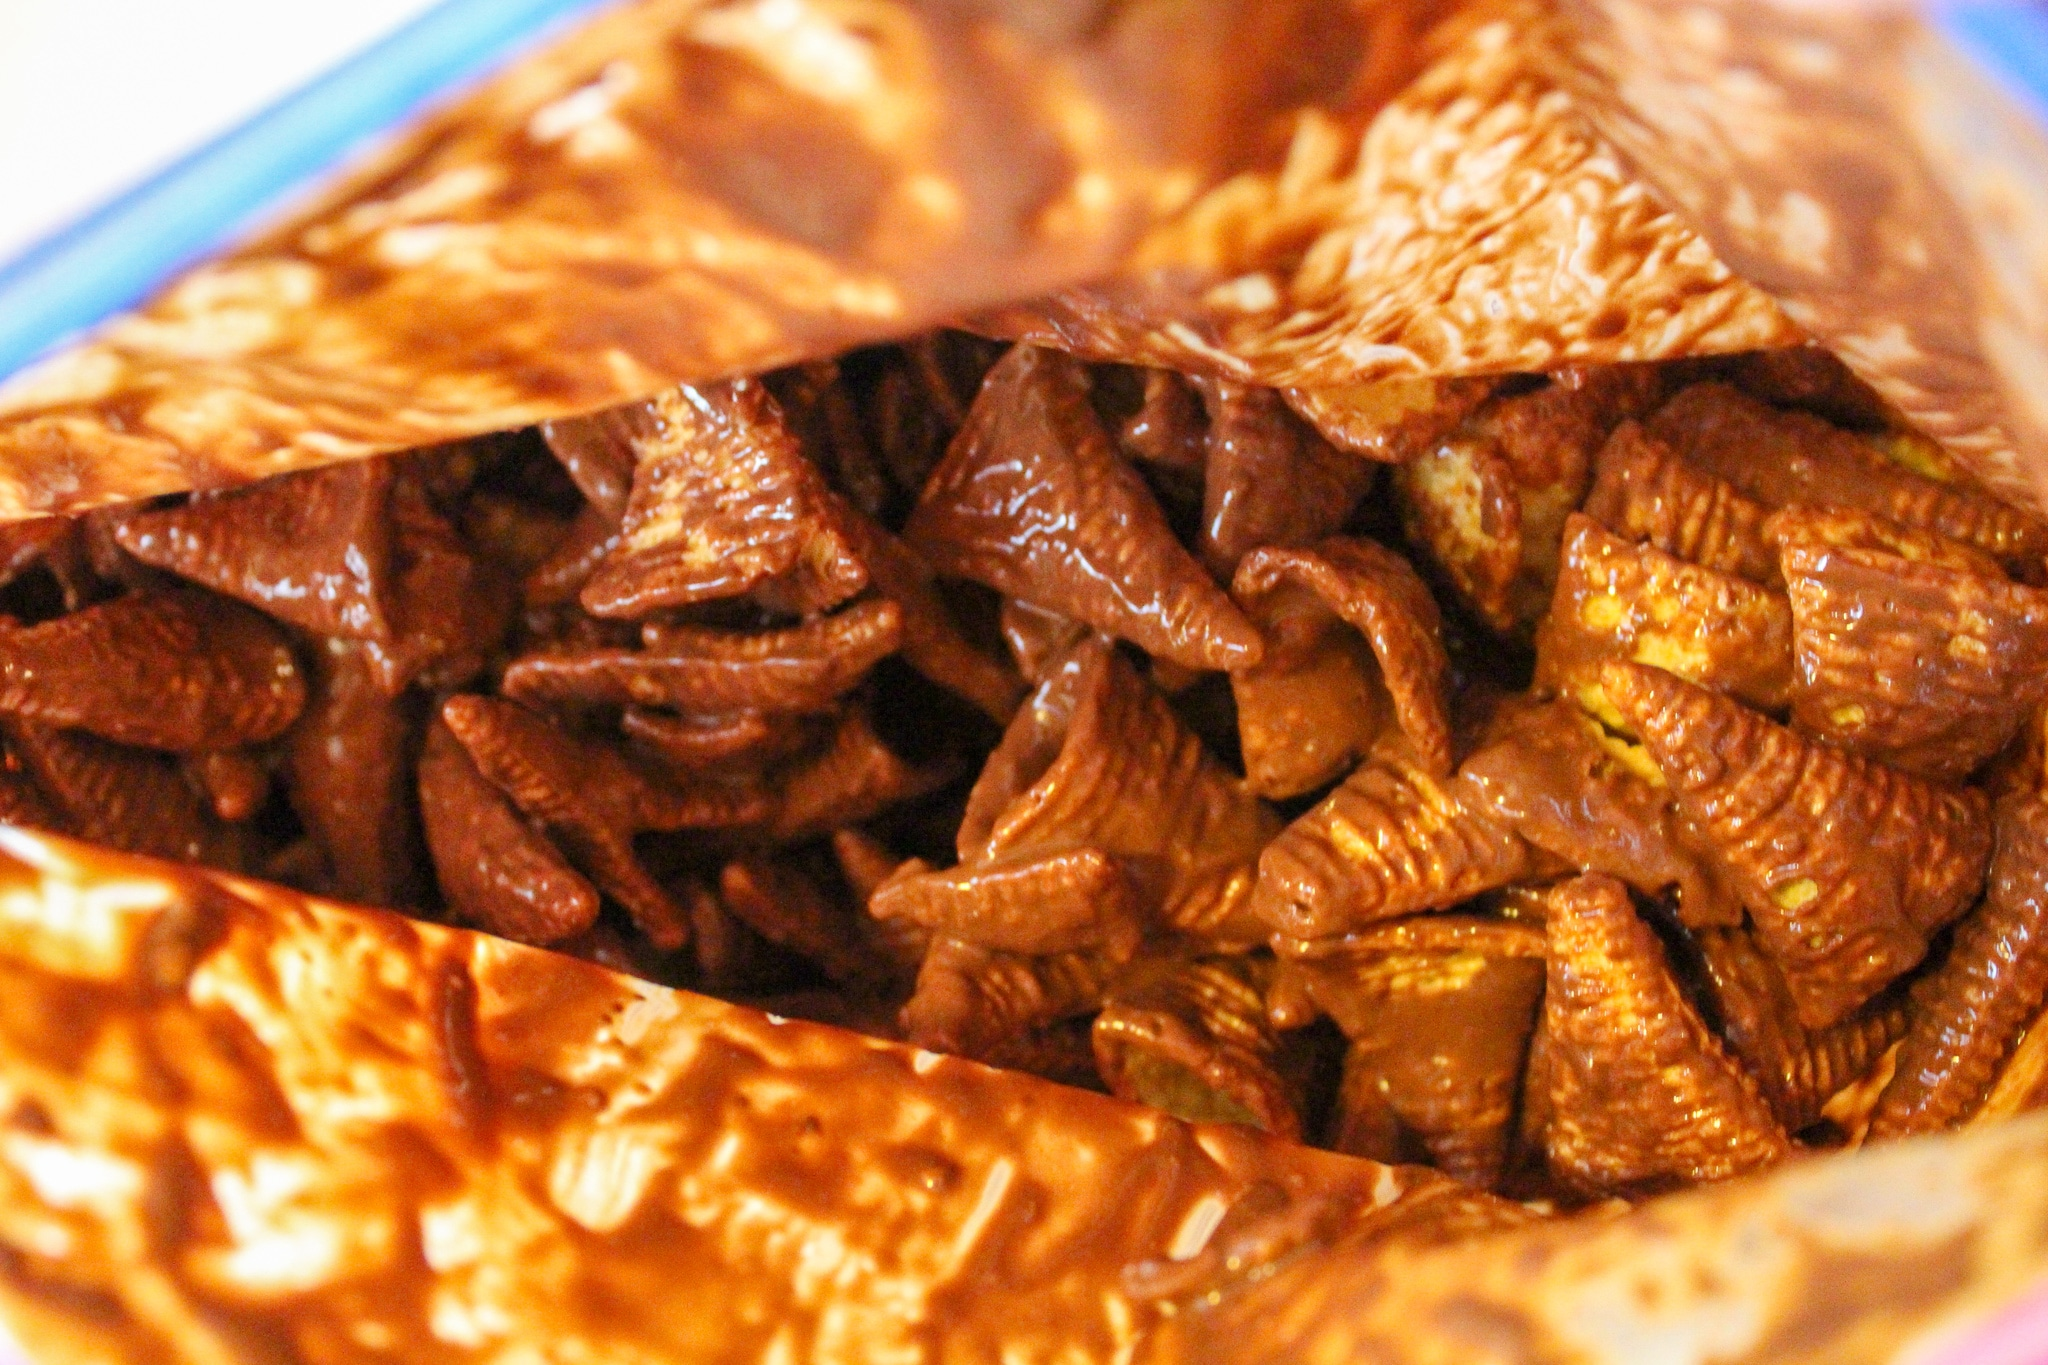 bugles with chocolate in a bag